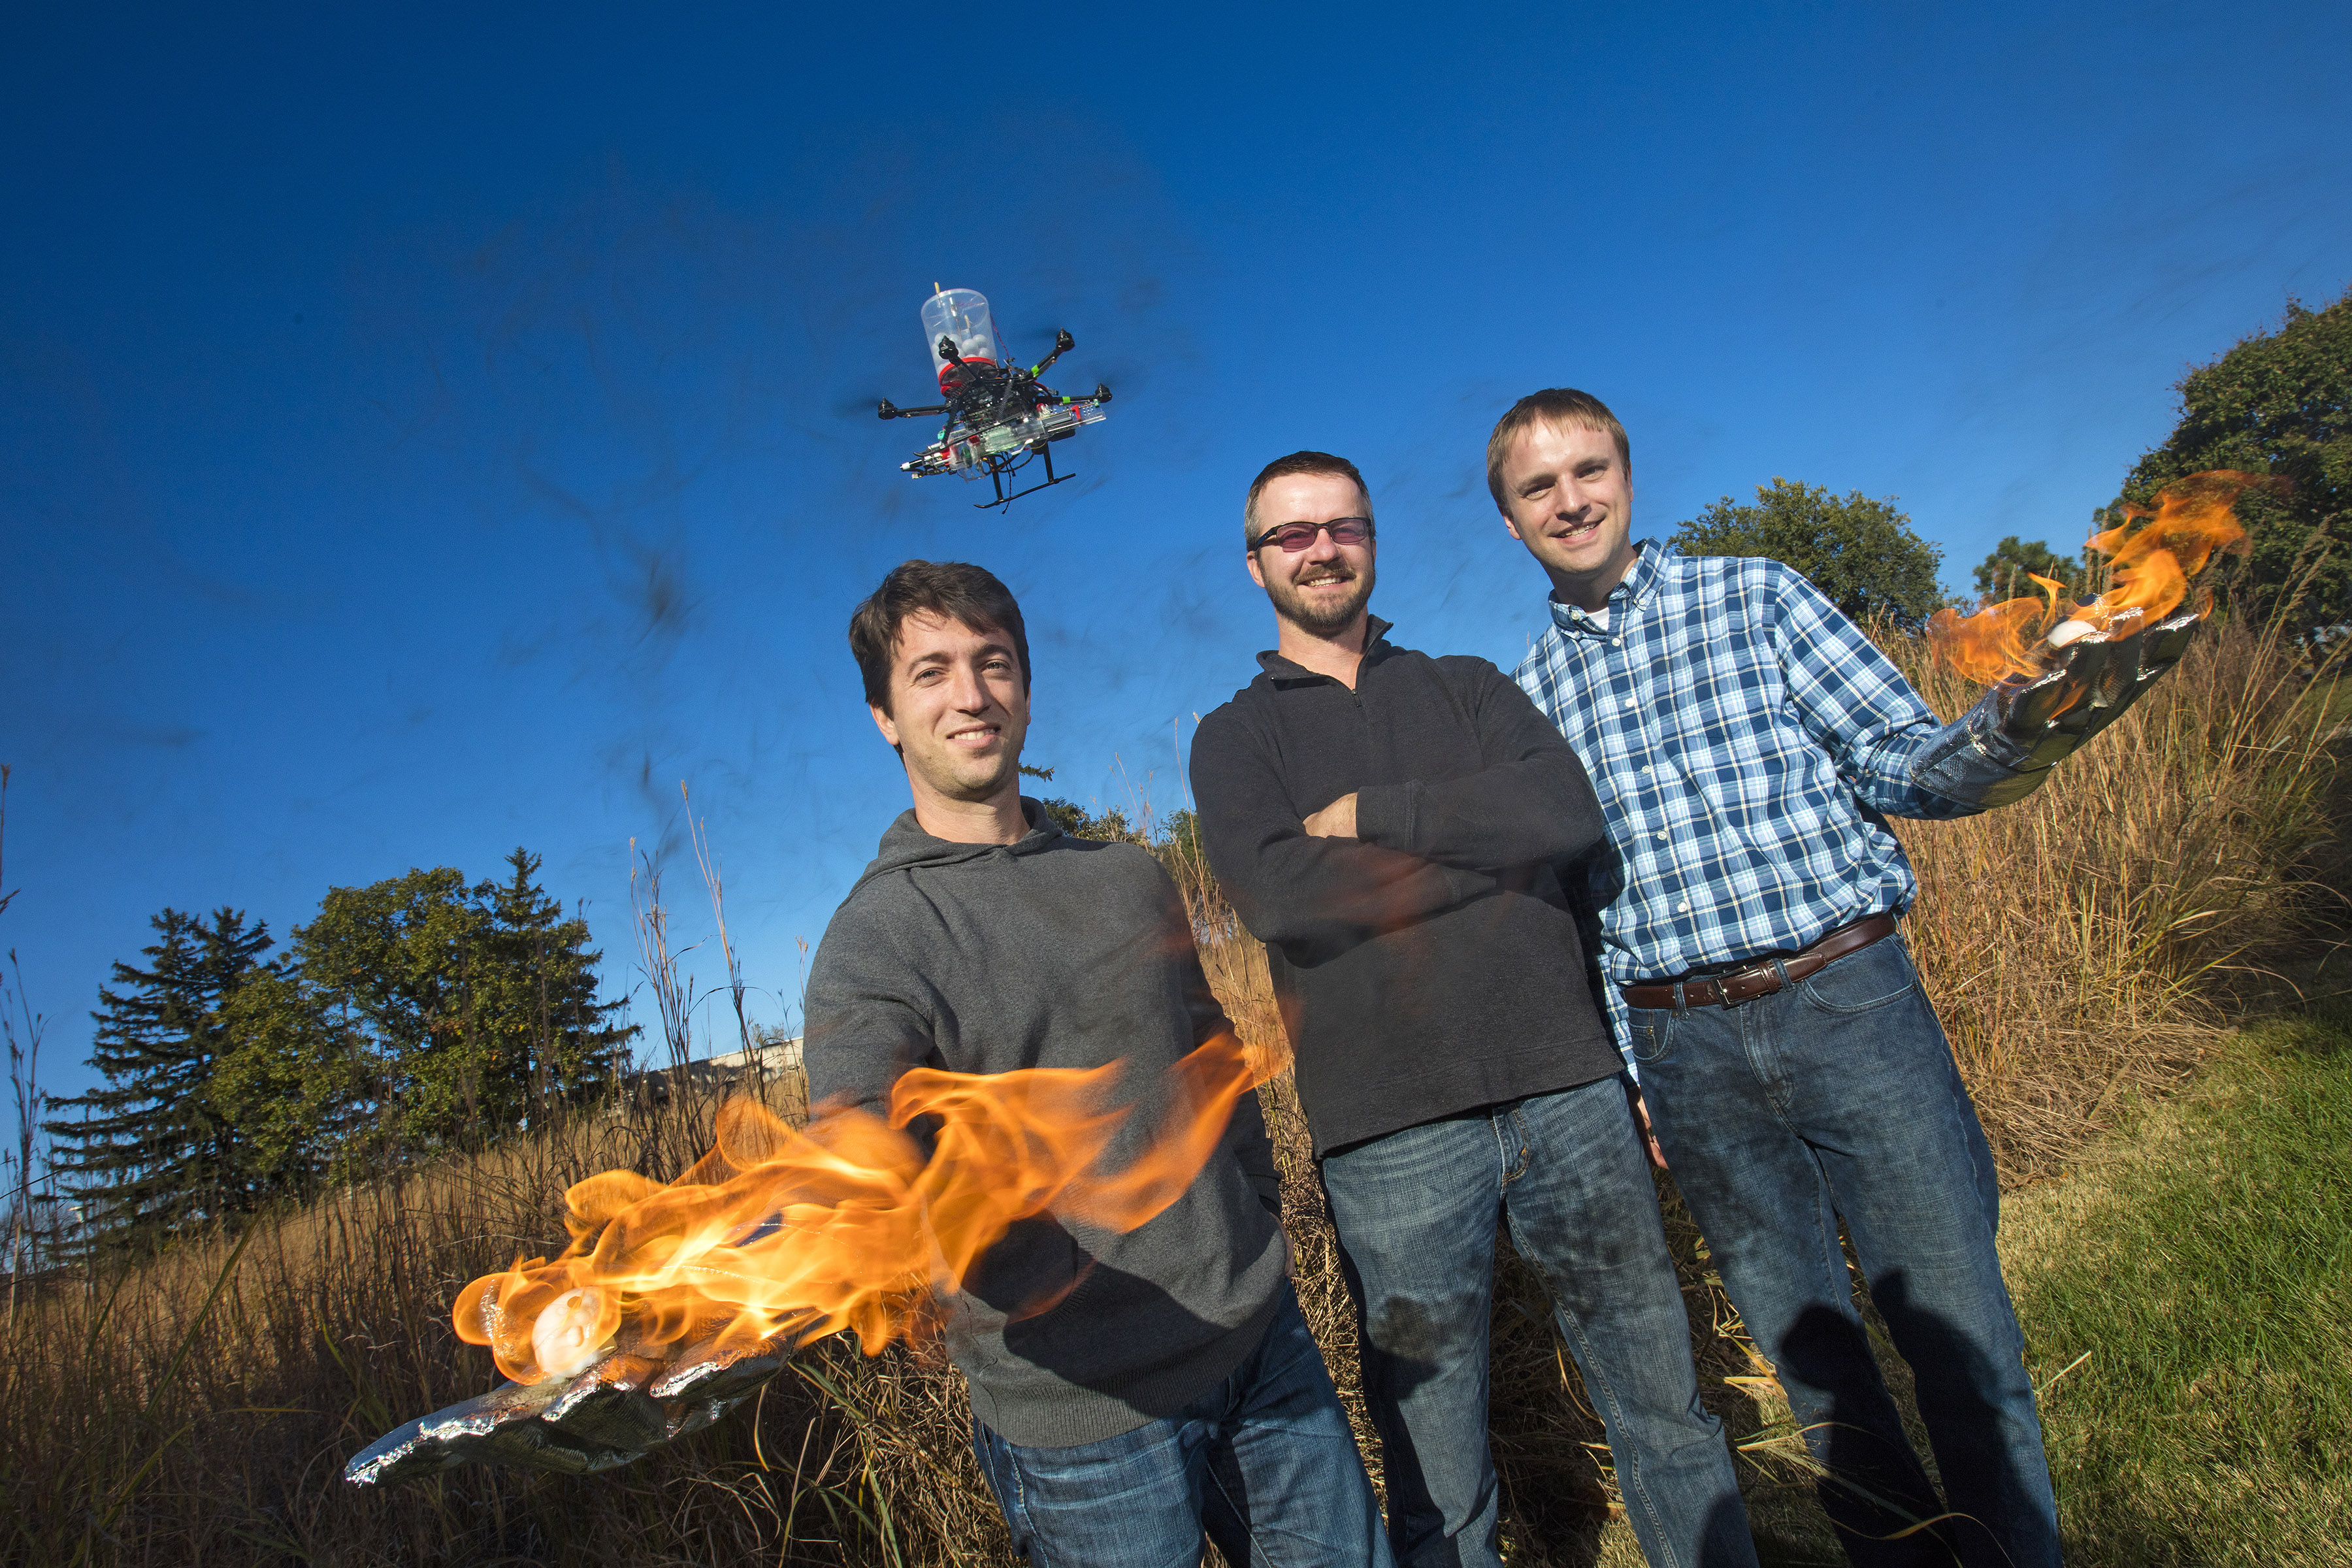 starting drone could aid grassland conservation efforts, fire prevention